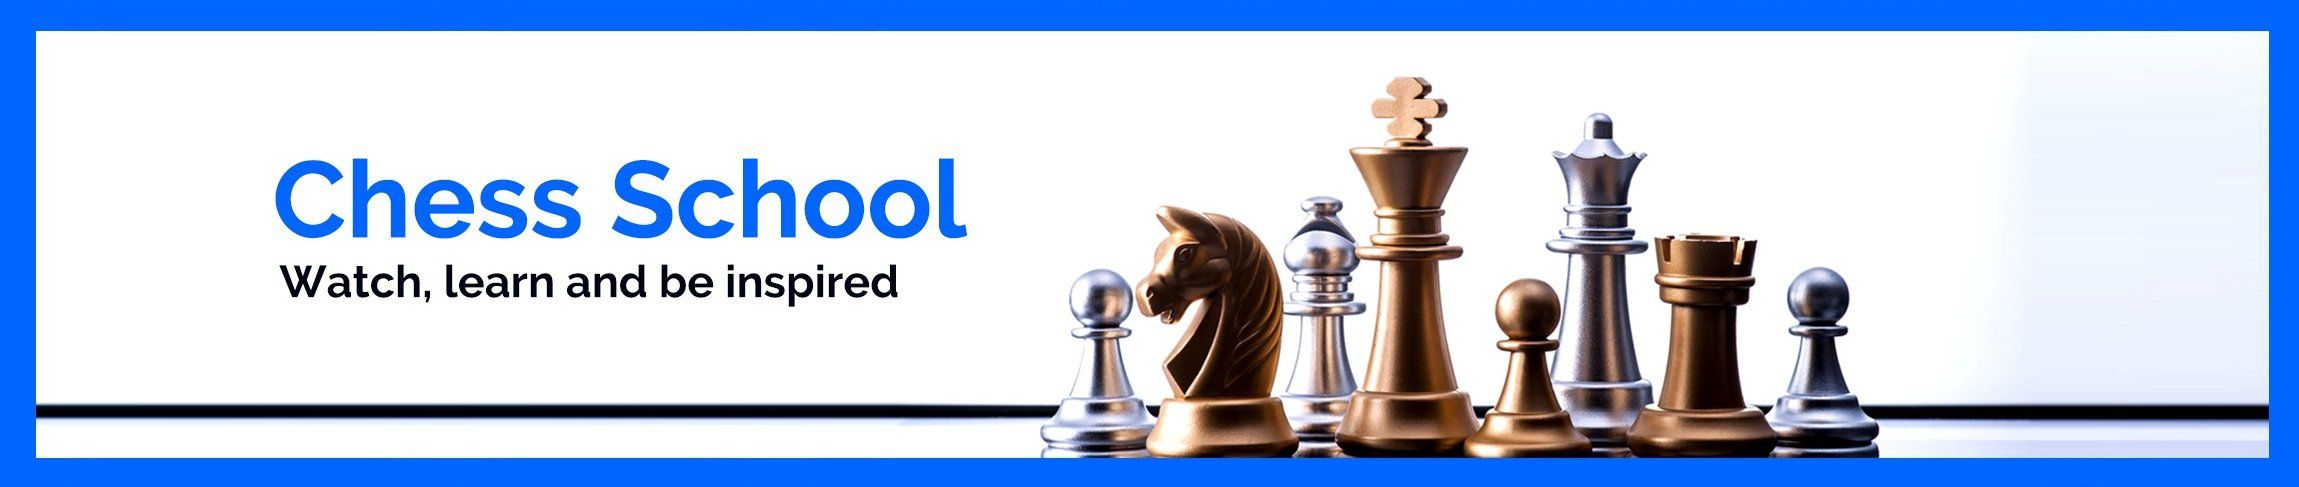 Free Chess Videos: endgame chess course